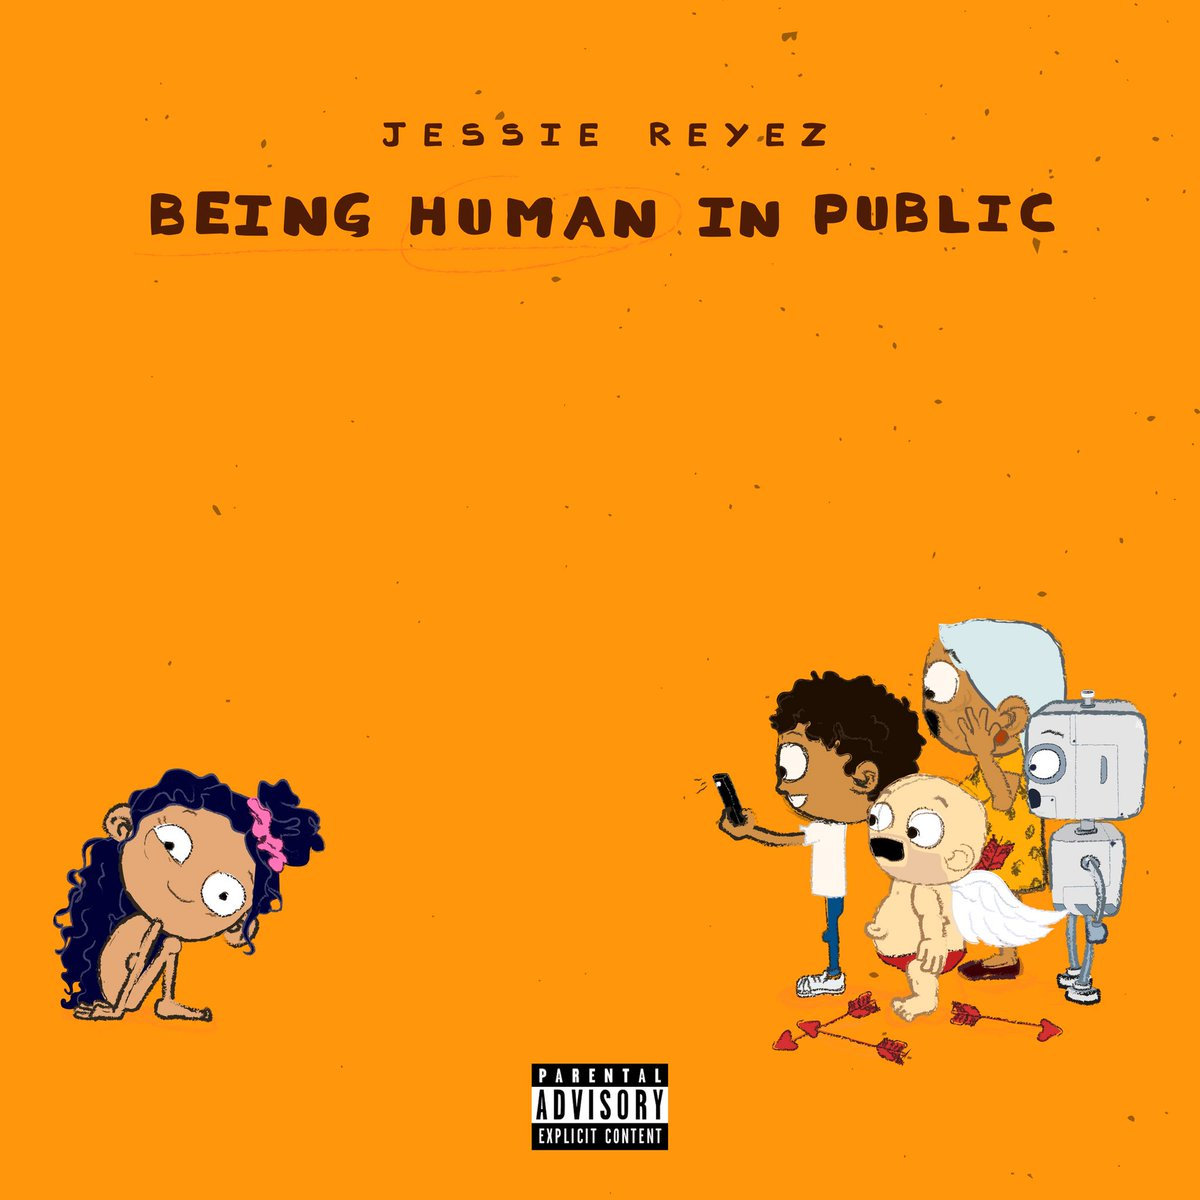 &#39;Being Human in Public&#39; EP complete this Friday, Oct 19th .  1. Saint Nobody (brand fucking NEW song) 2. Apple Juice 3. Sola 4. F*** Being Friends 5. Dear Yessie 6. Imported ft. JRM 7. Body Count Remix ft. Normani &amp; Kehlani <br>http://pic.twitter.com/ilCzPFa0bL